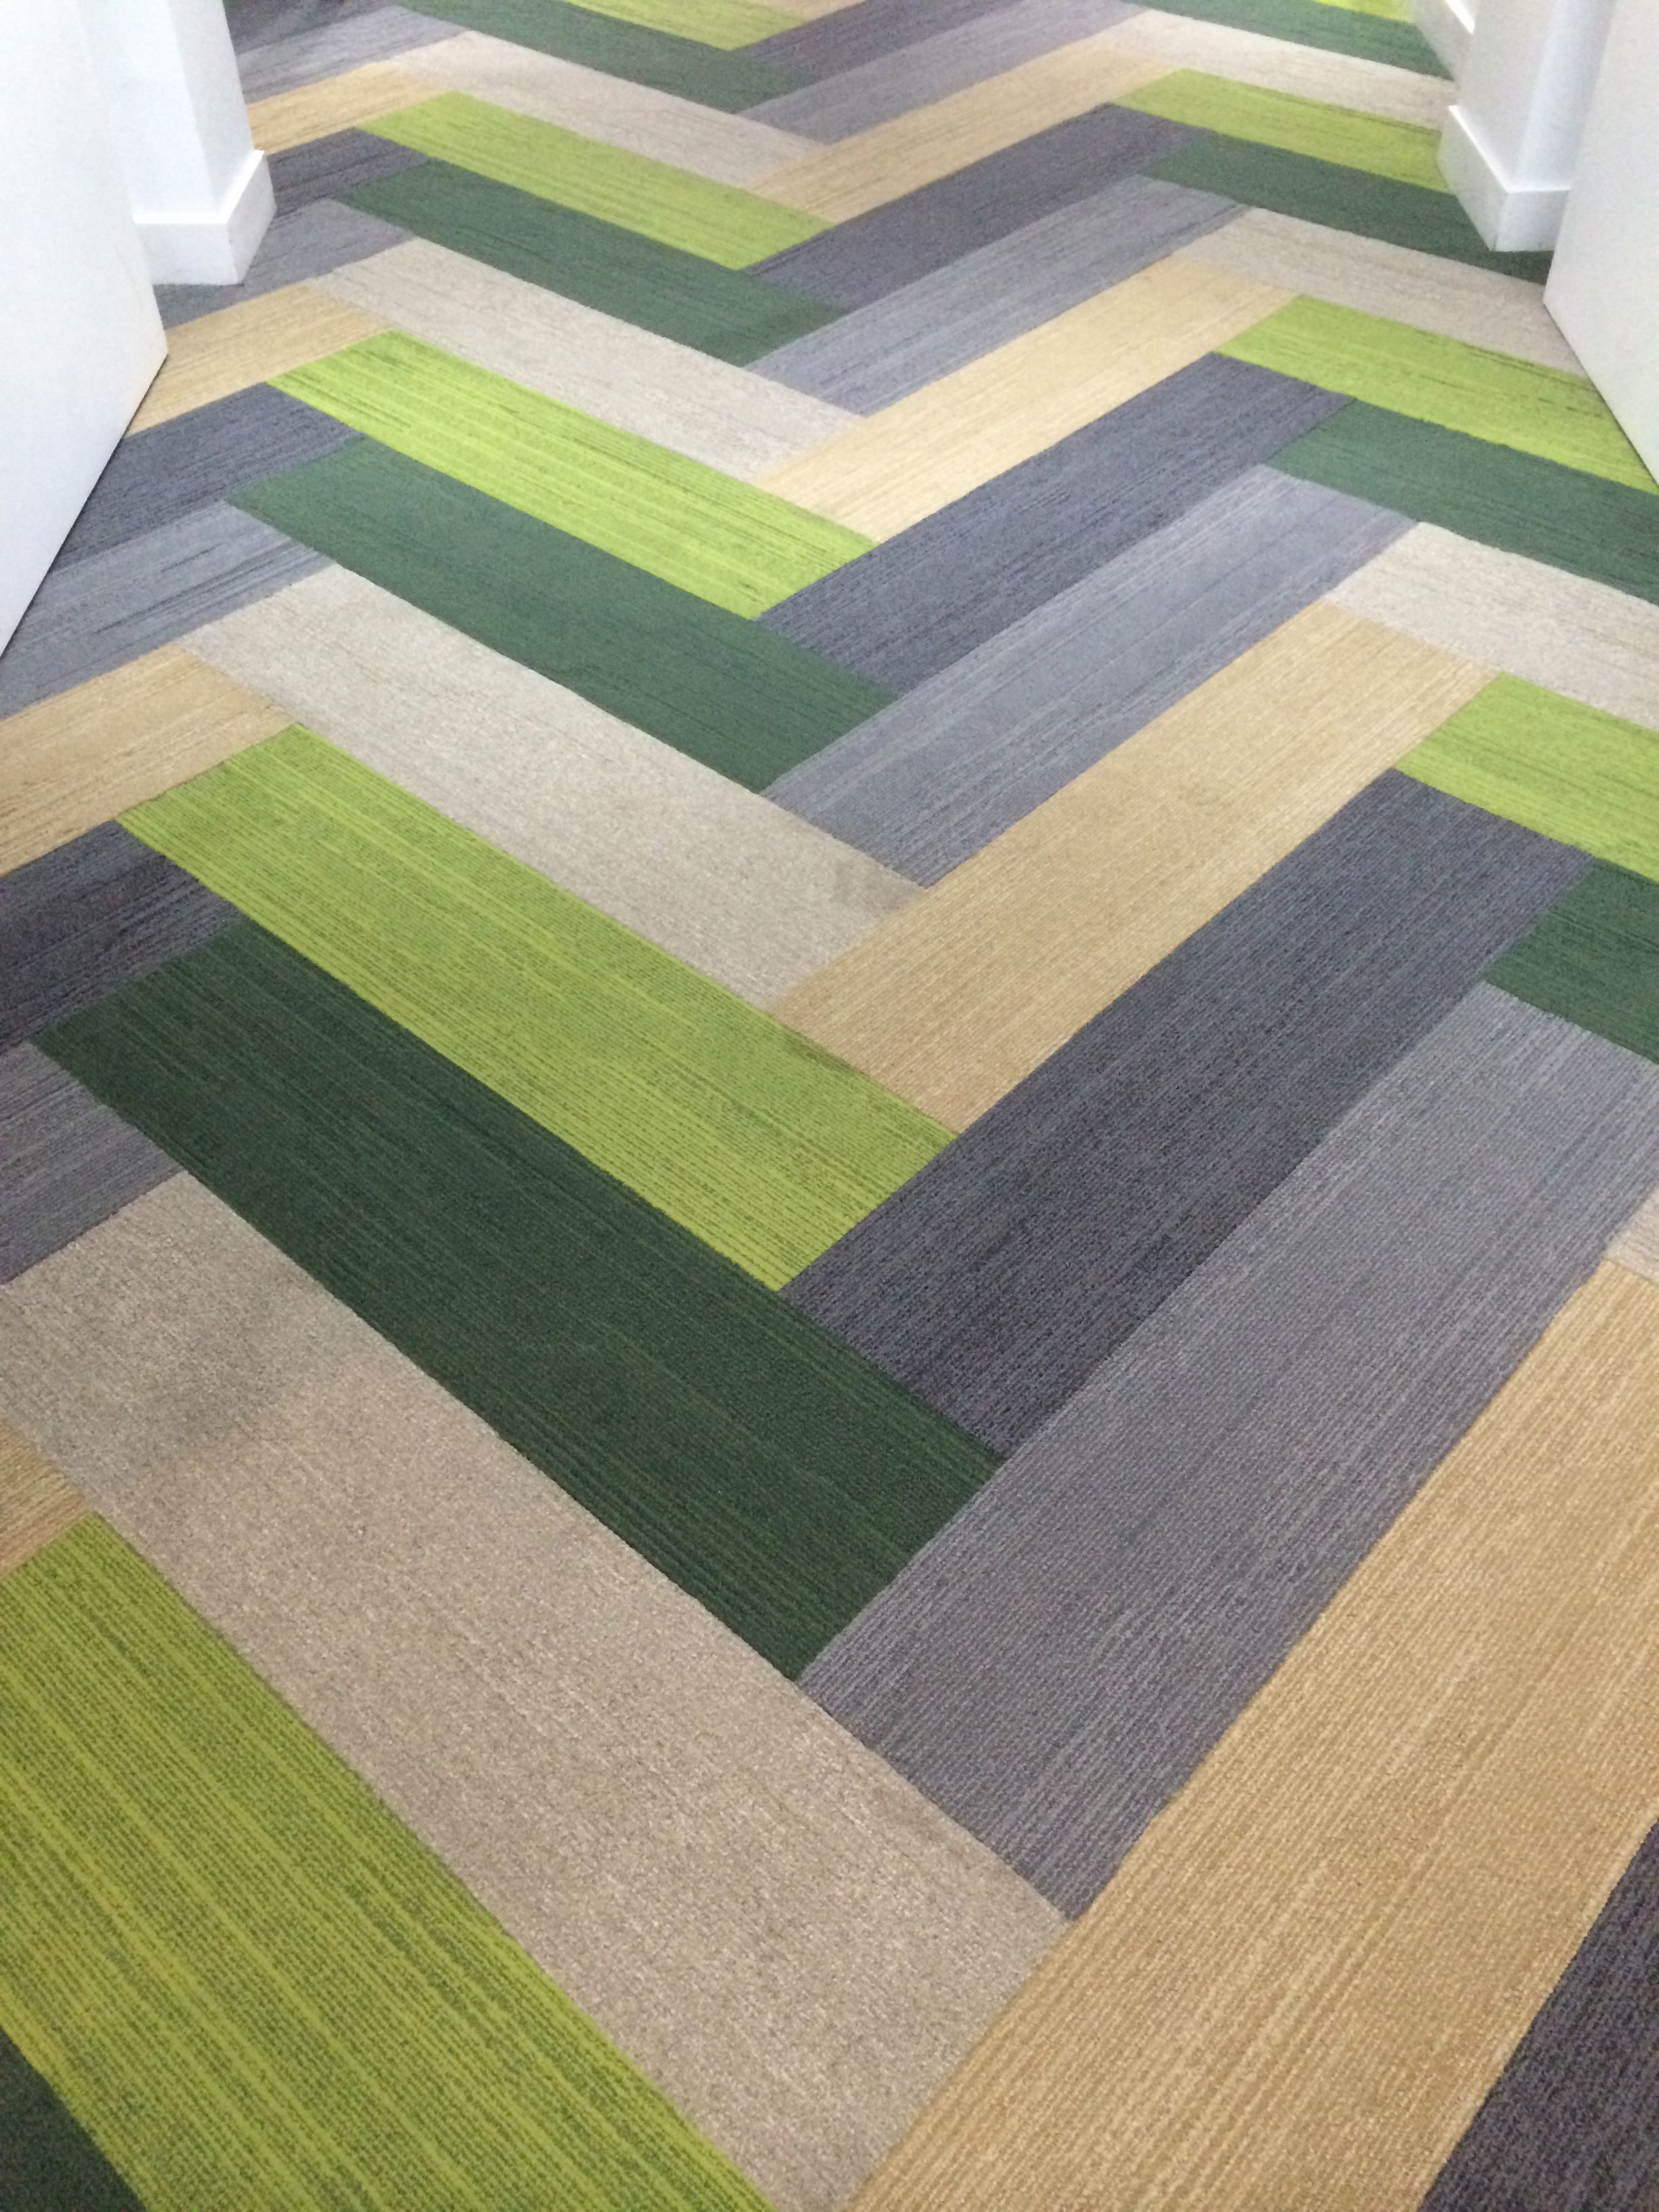 Plank Carpet Tiles Law Office Pinterest Carpet Tiles Tiles